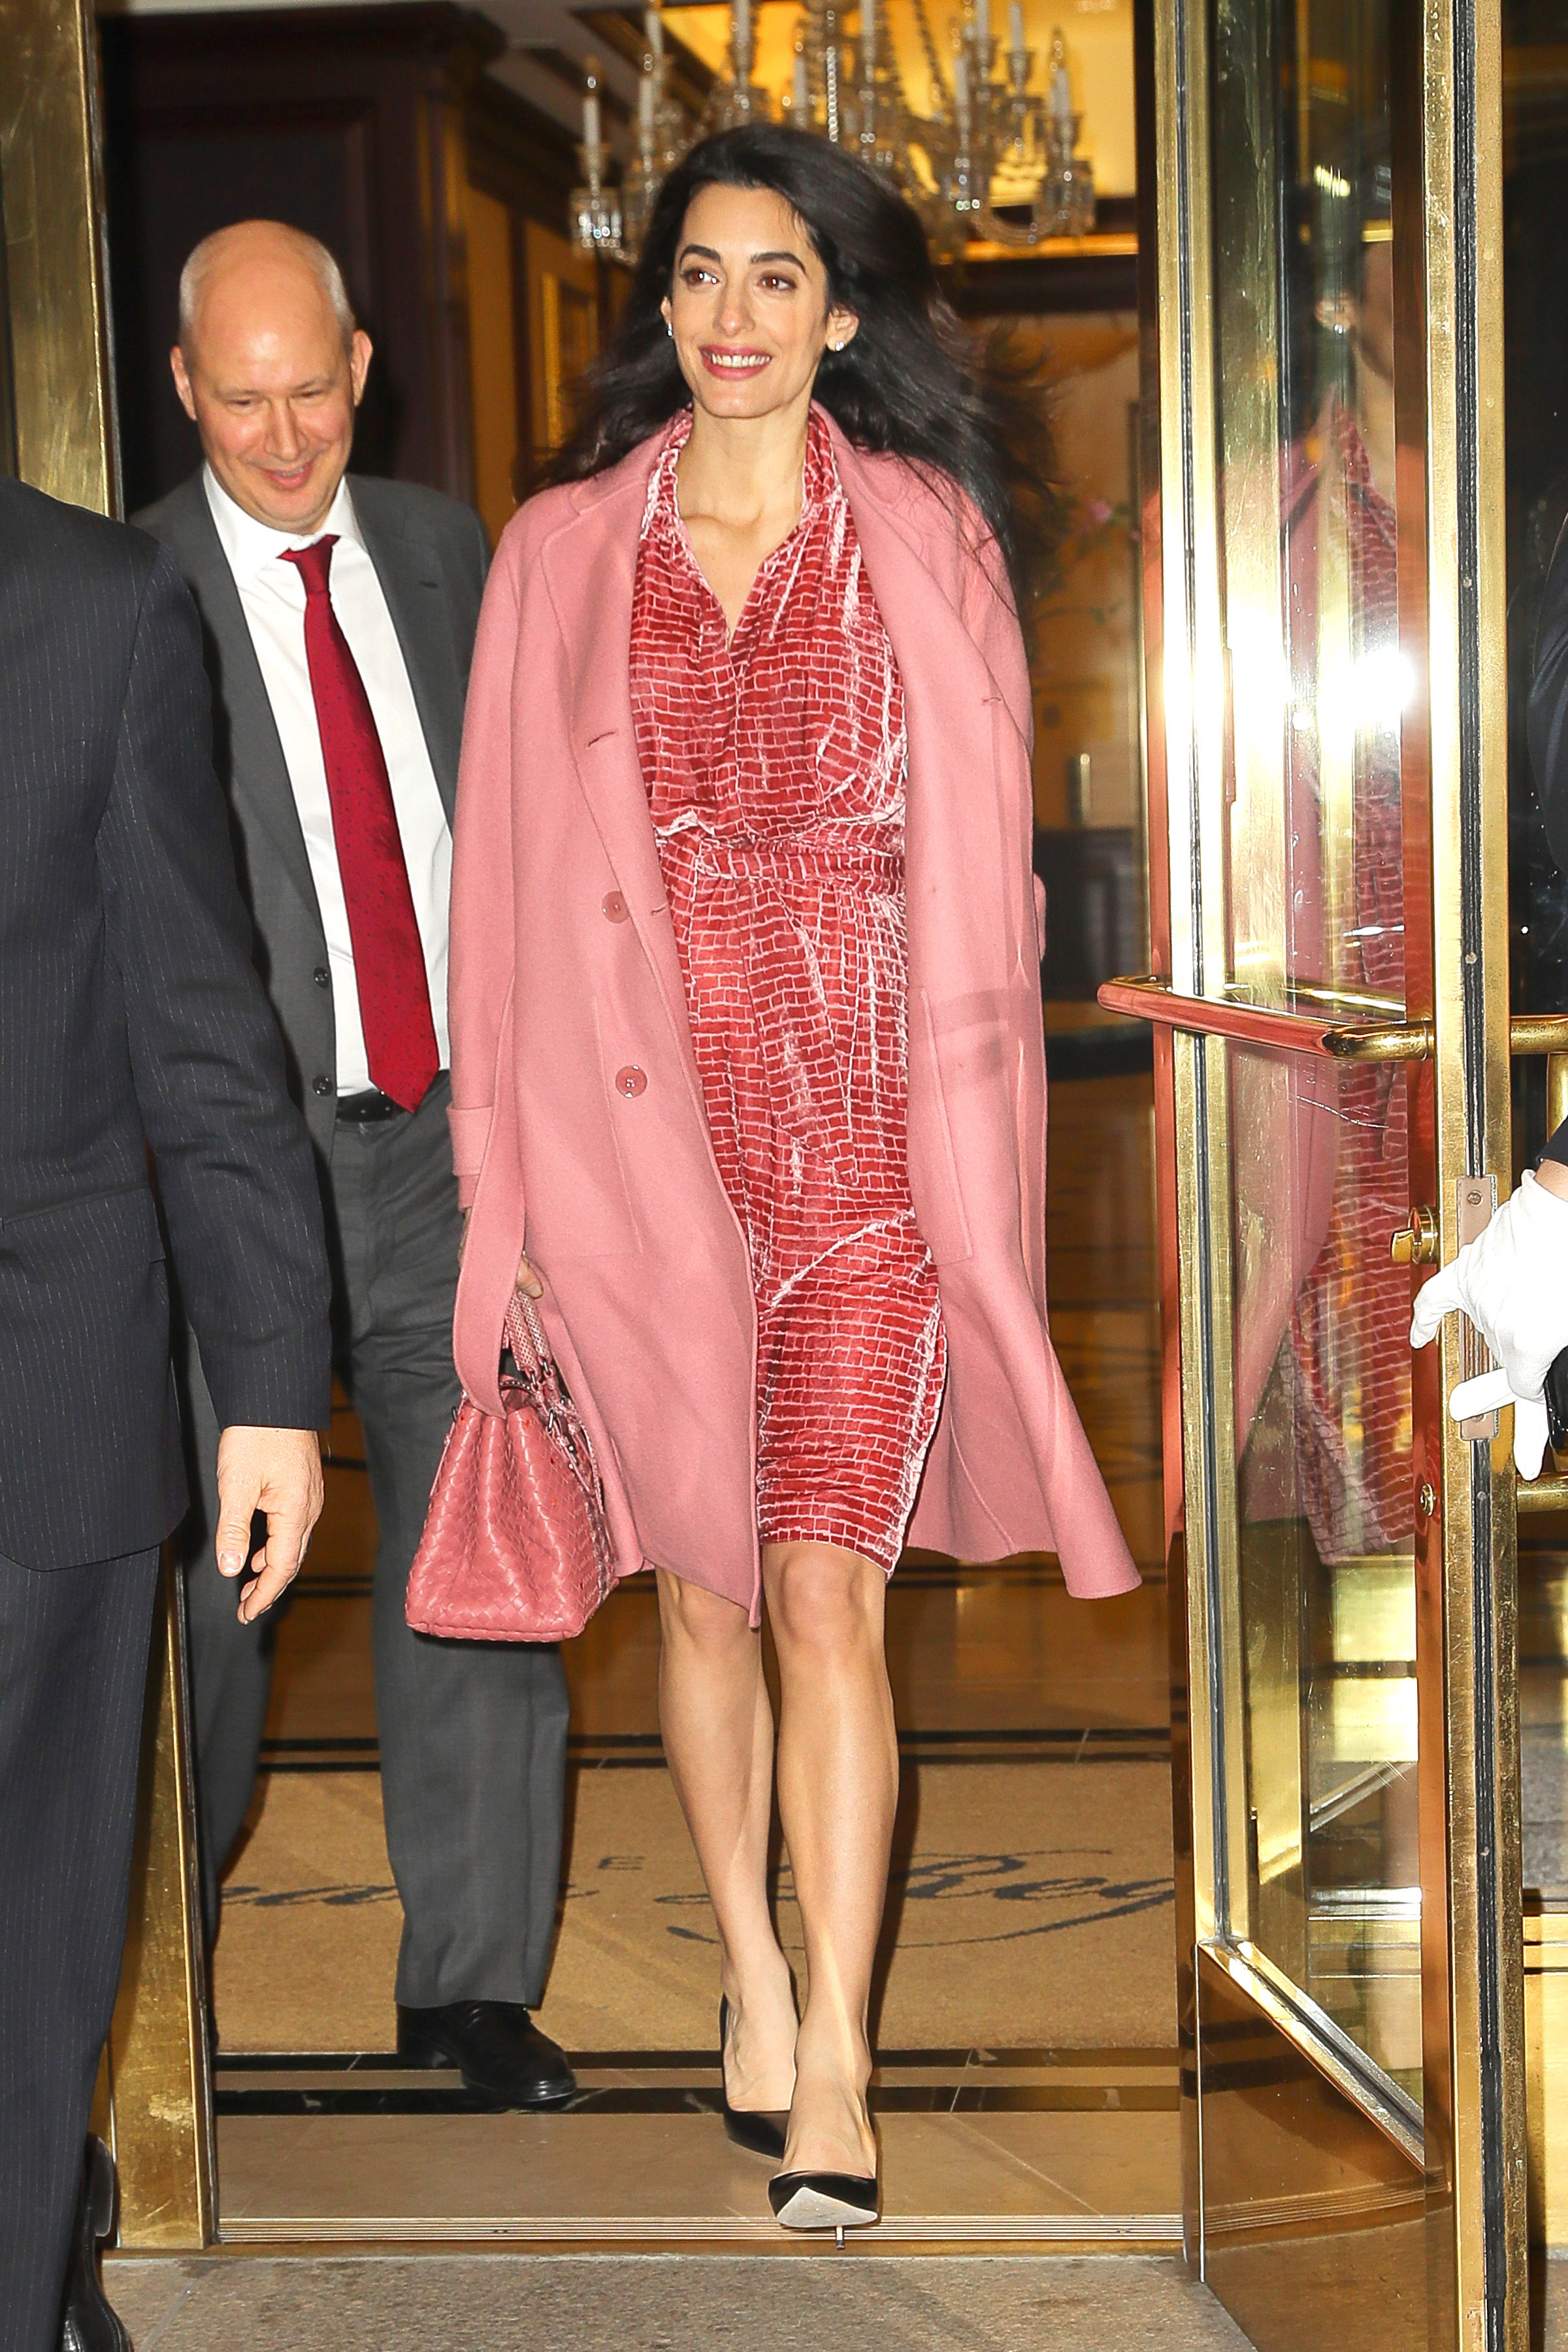 EXCLUSIVE Pregnant Amal Clooney Looks Radiant In Pink For Charity Event In NYC